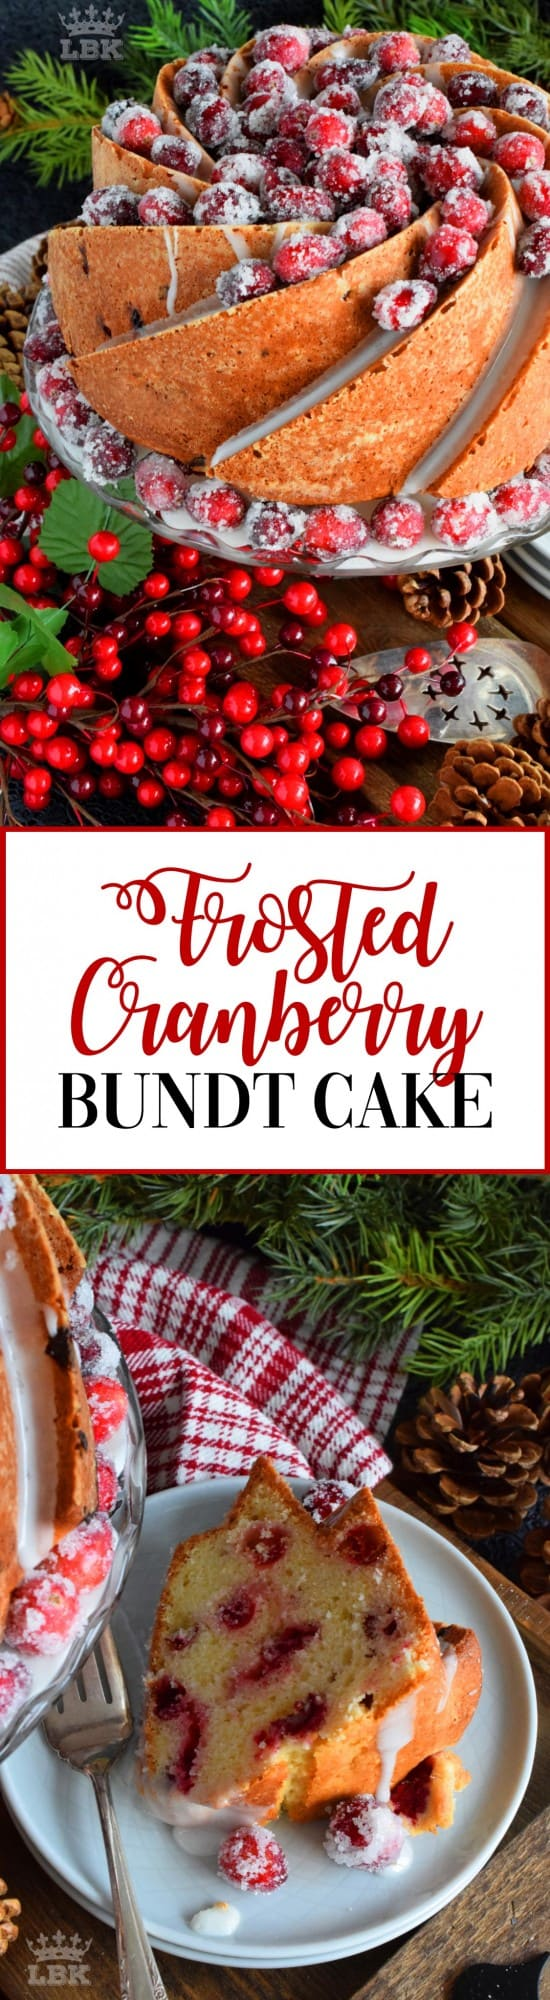 Frosted Cranberry Bundt Cake - This bundt cake is loaded with whole, fresh cranberries and frosted with a simple icing. Tart, sweet, and perfect for any holiday table! #frosted #fresh #cranberries #cake #bundt #bundtbakers #christmas #holiday